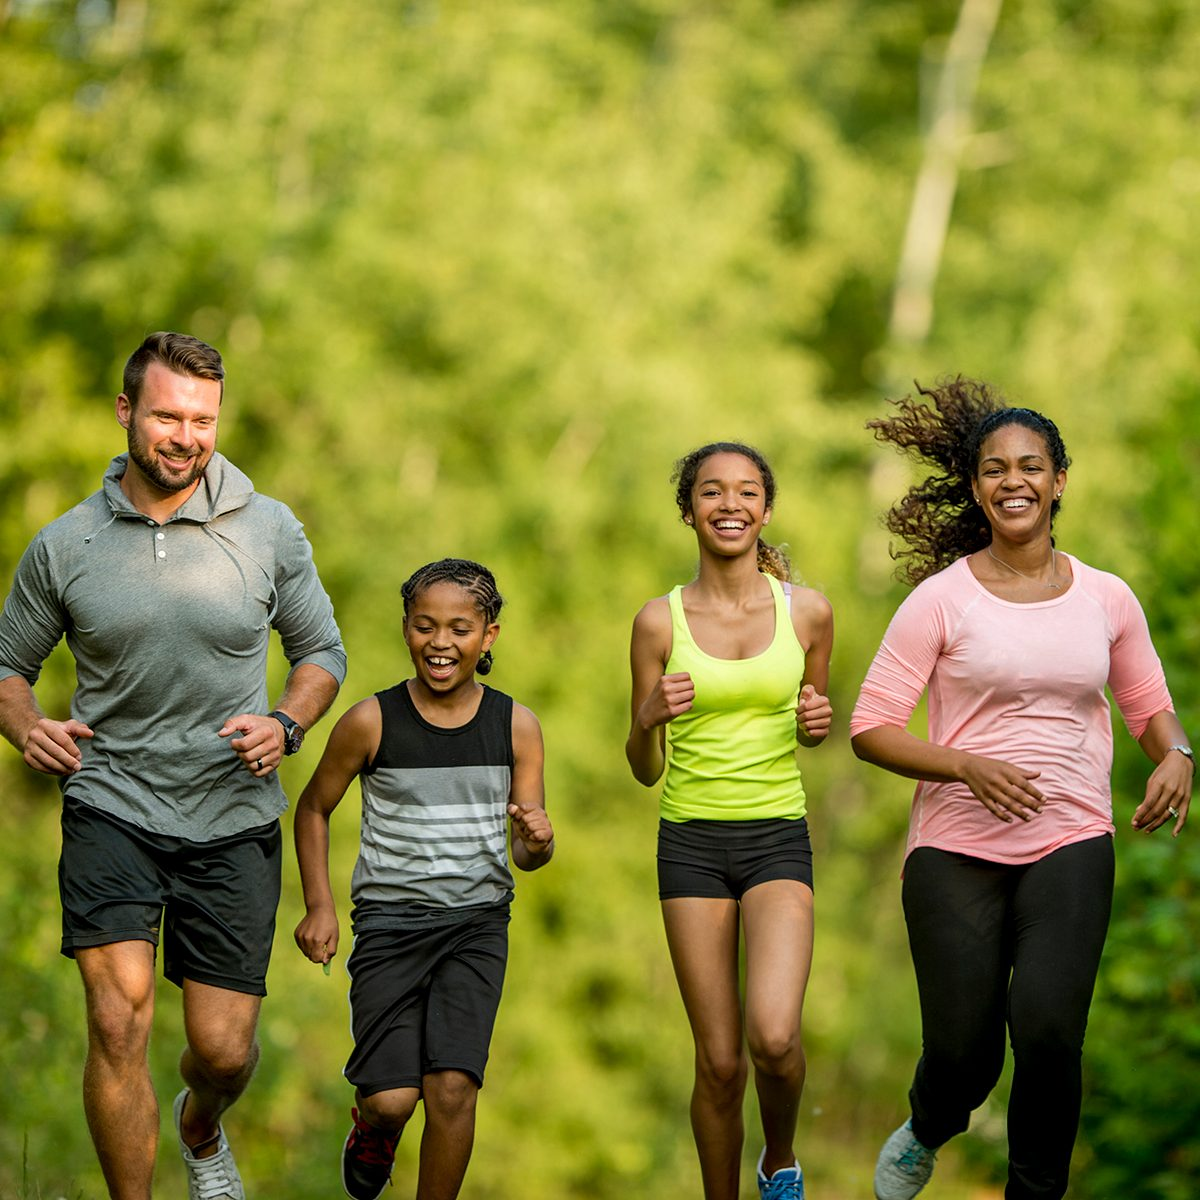 A multi-ethnic family (mother, father, son, daughter) getting exercise by going for a jog at the park.